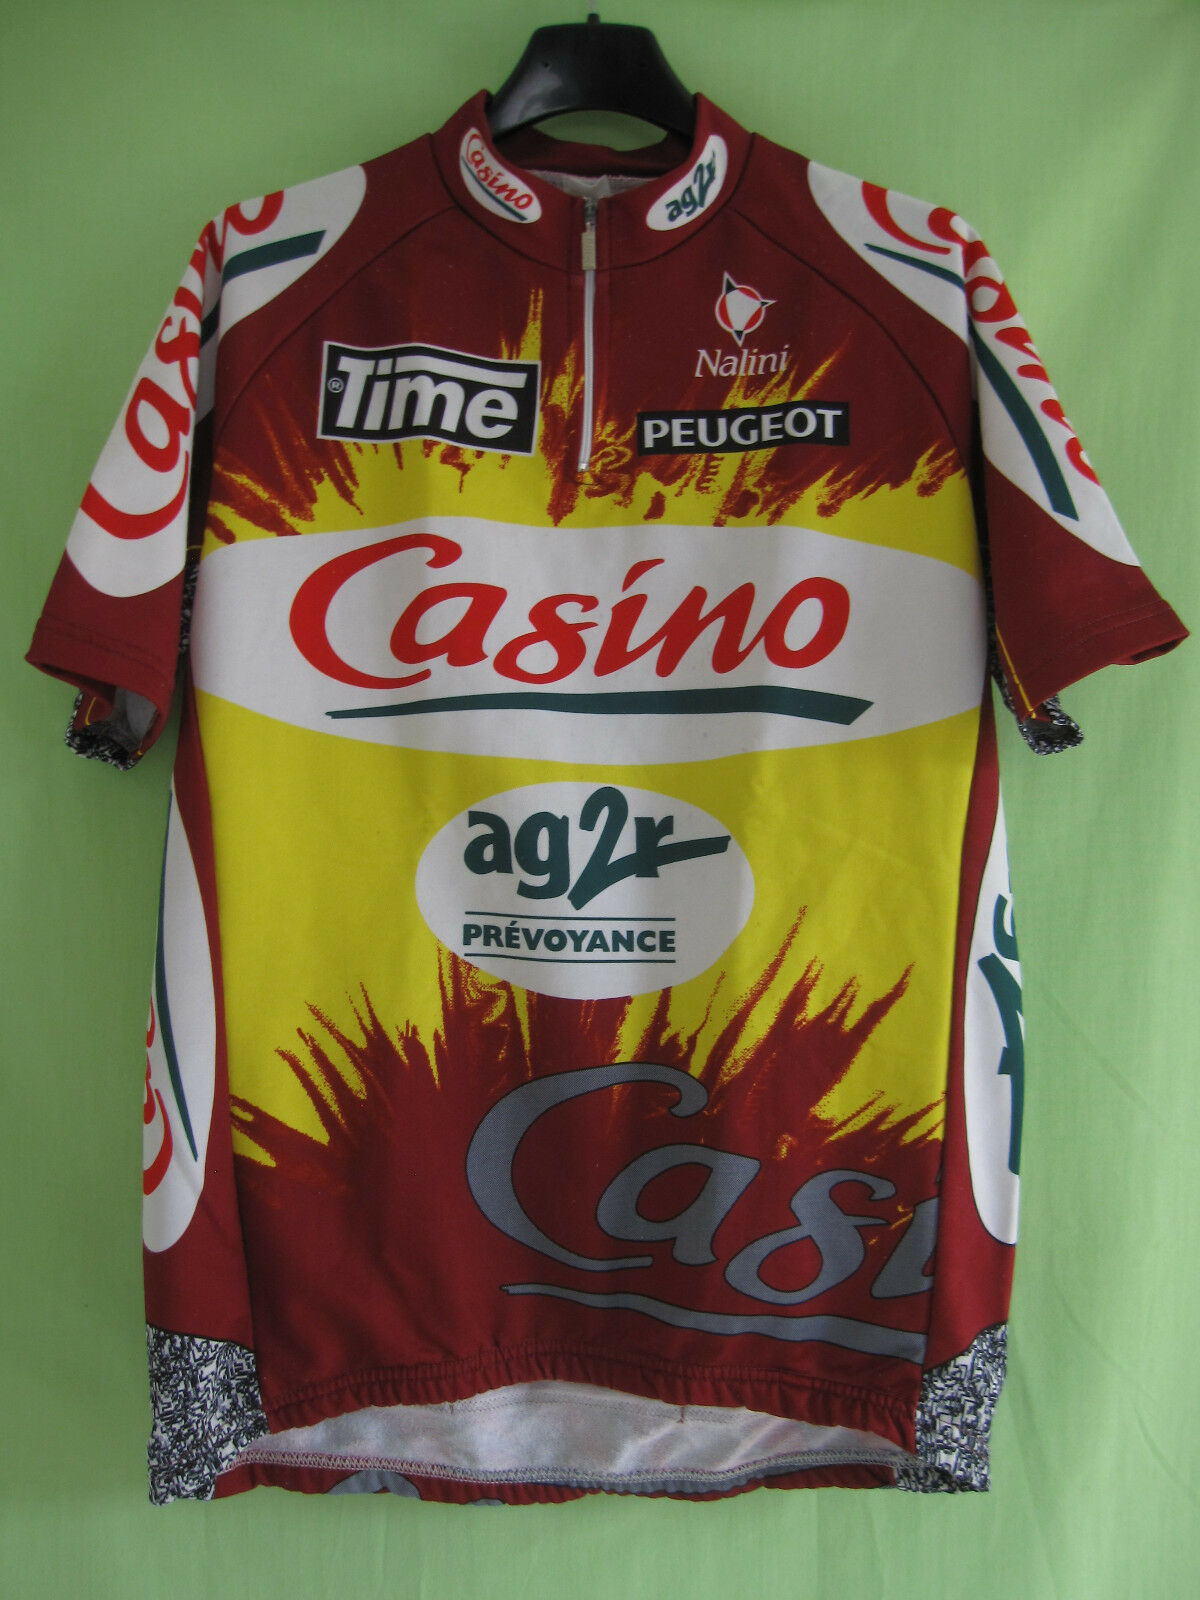 Maillot cycliste Casino Ag2r Time Peugeot vintage jersey Cycling - 4   L